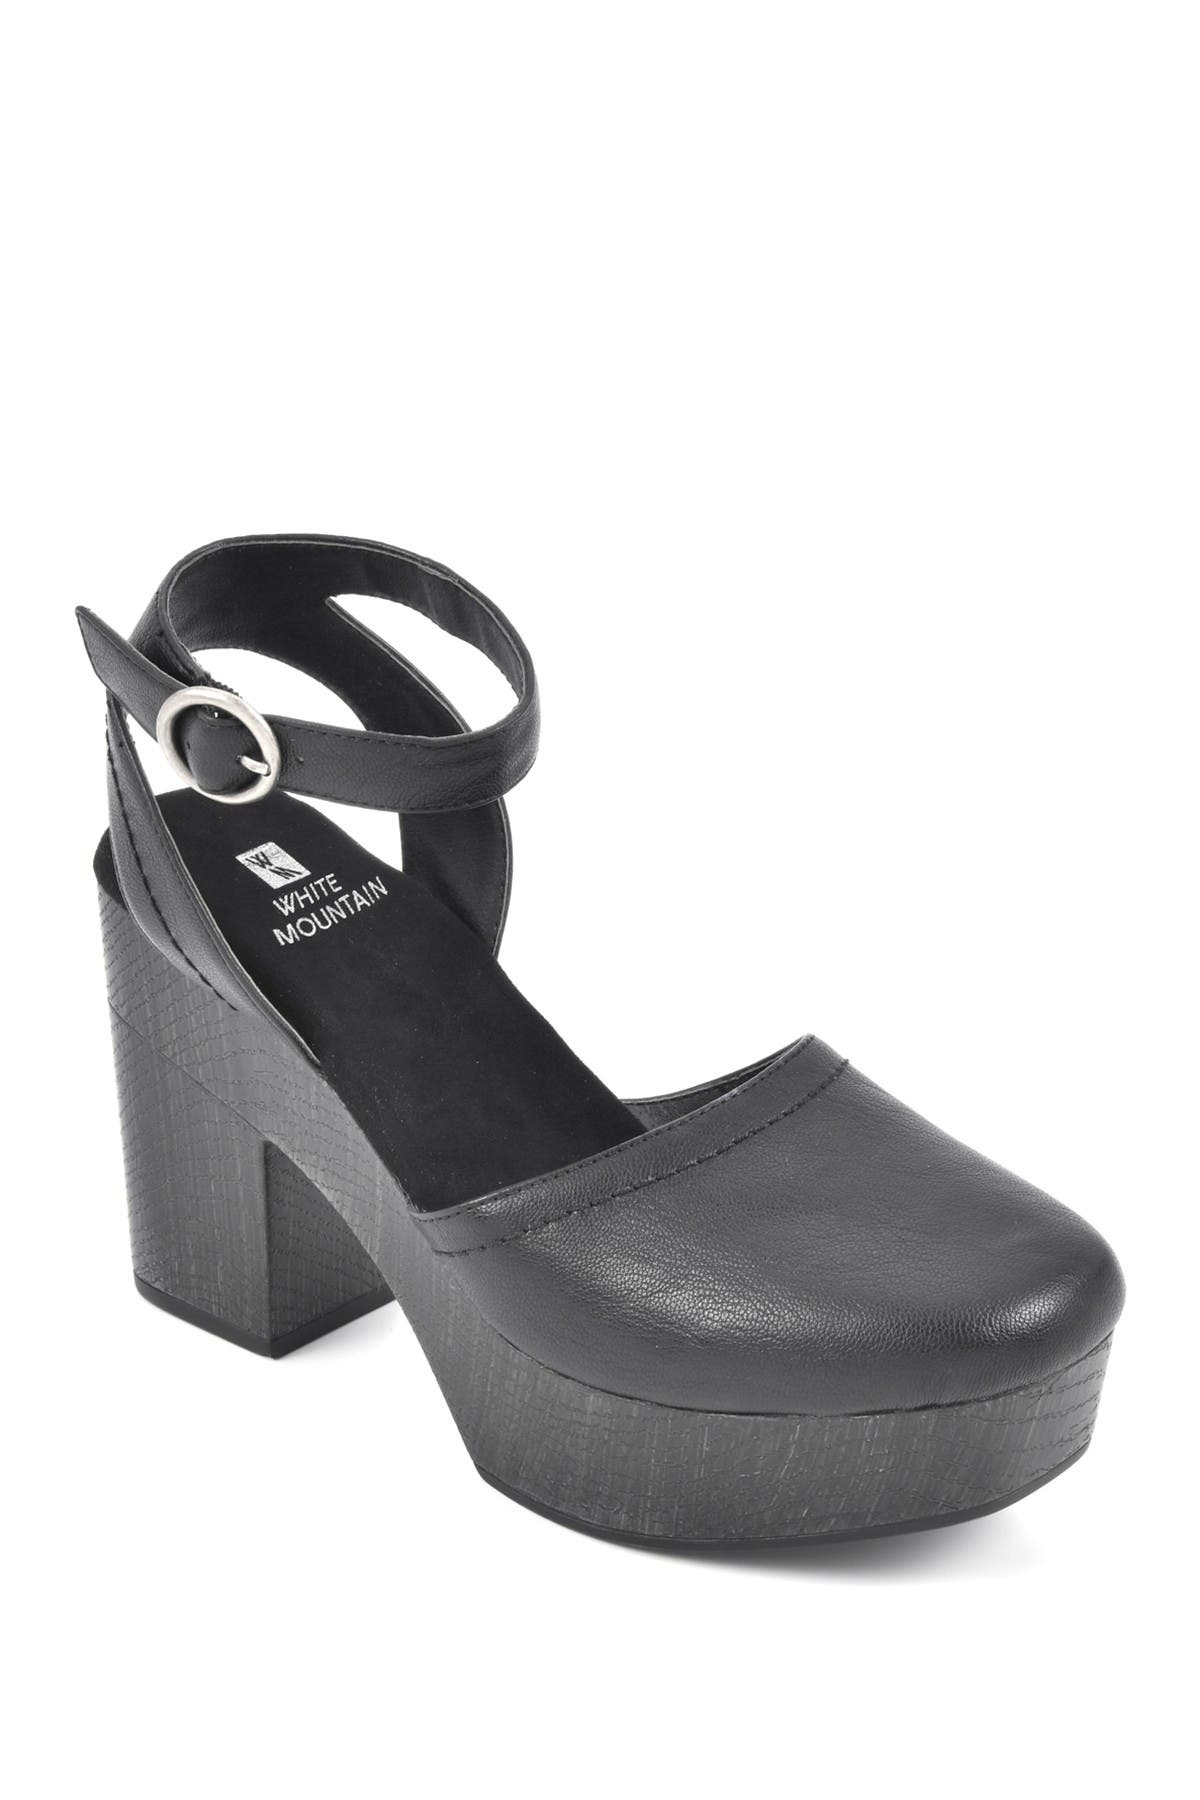 Image of White Mountain Footwear Tuition Platform Heel